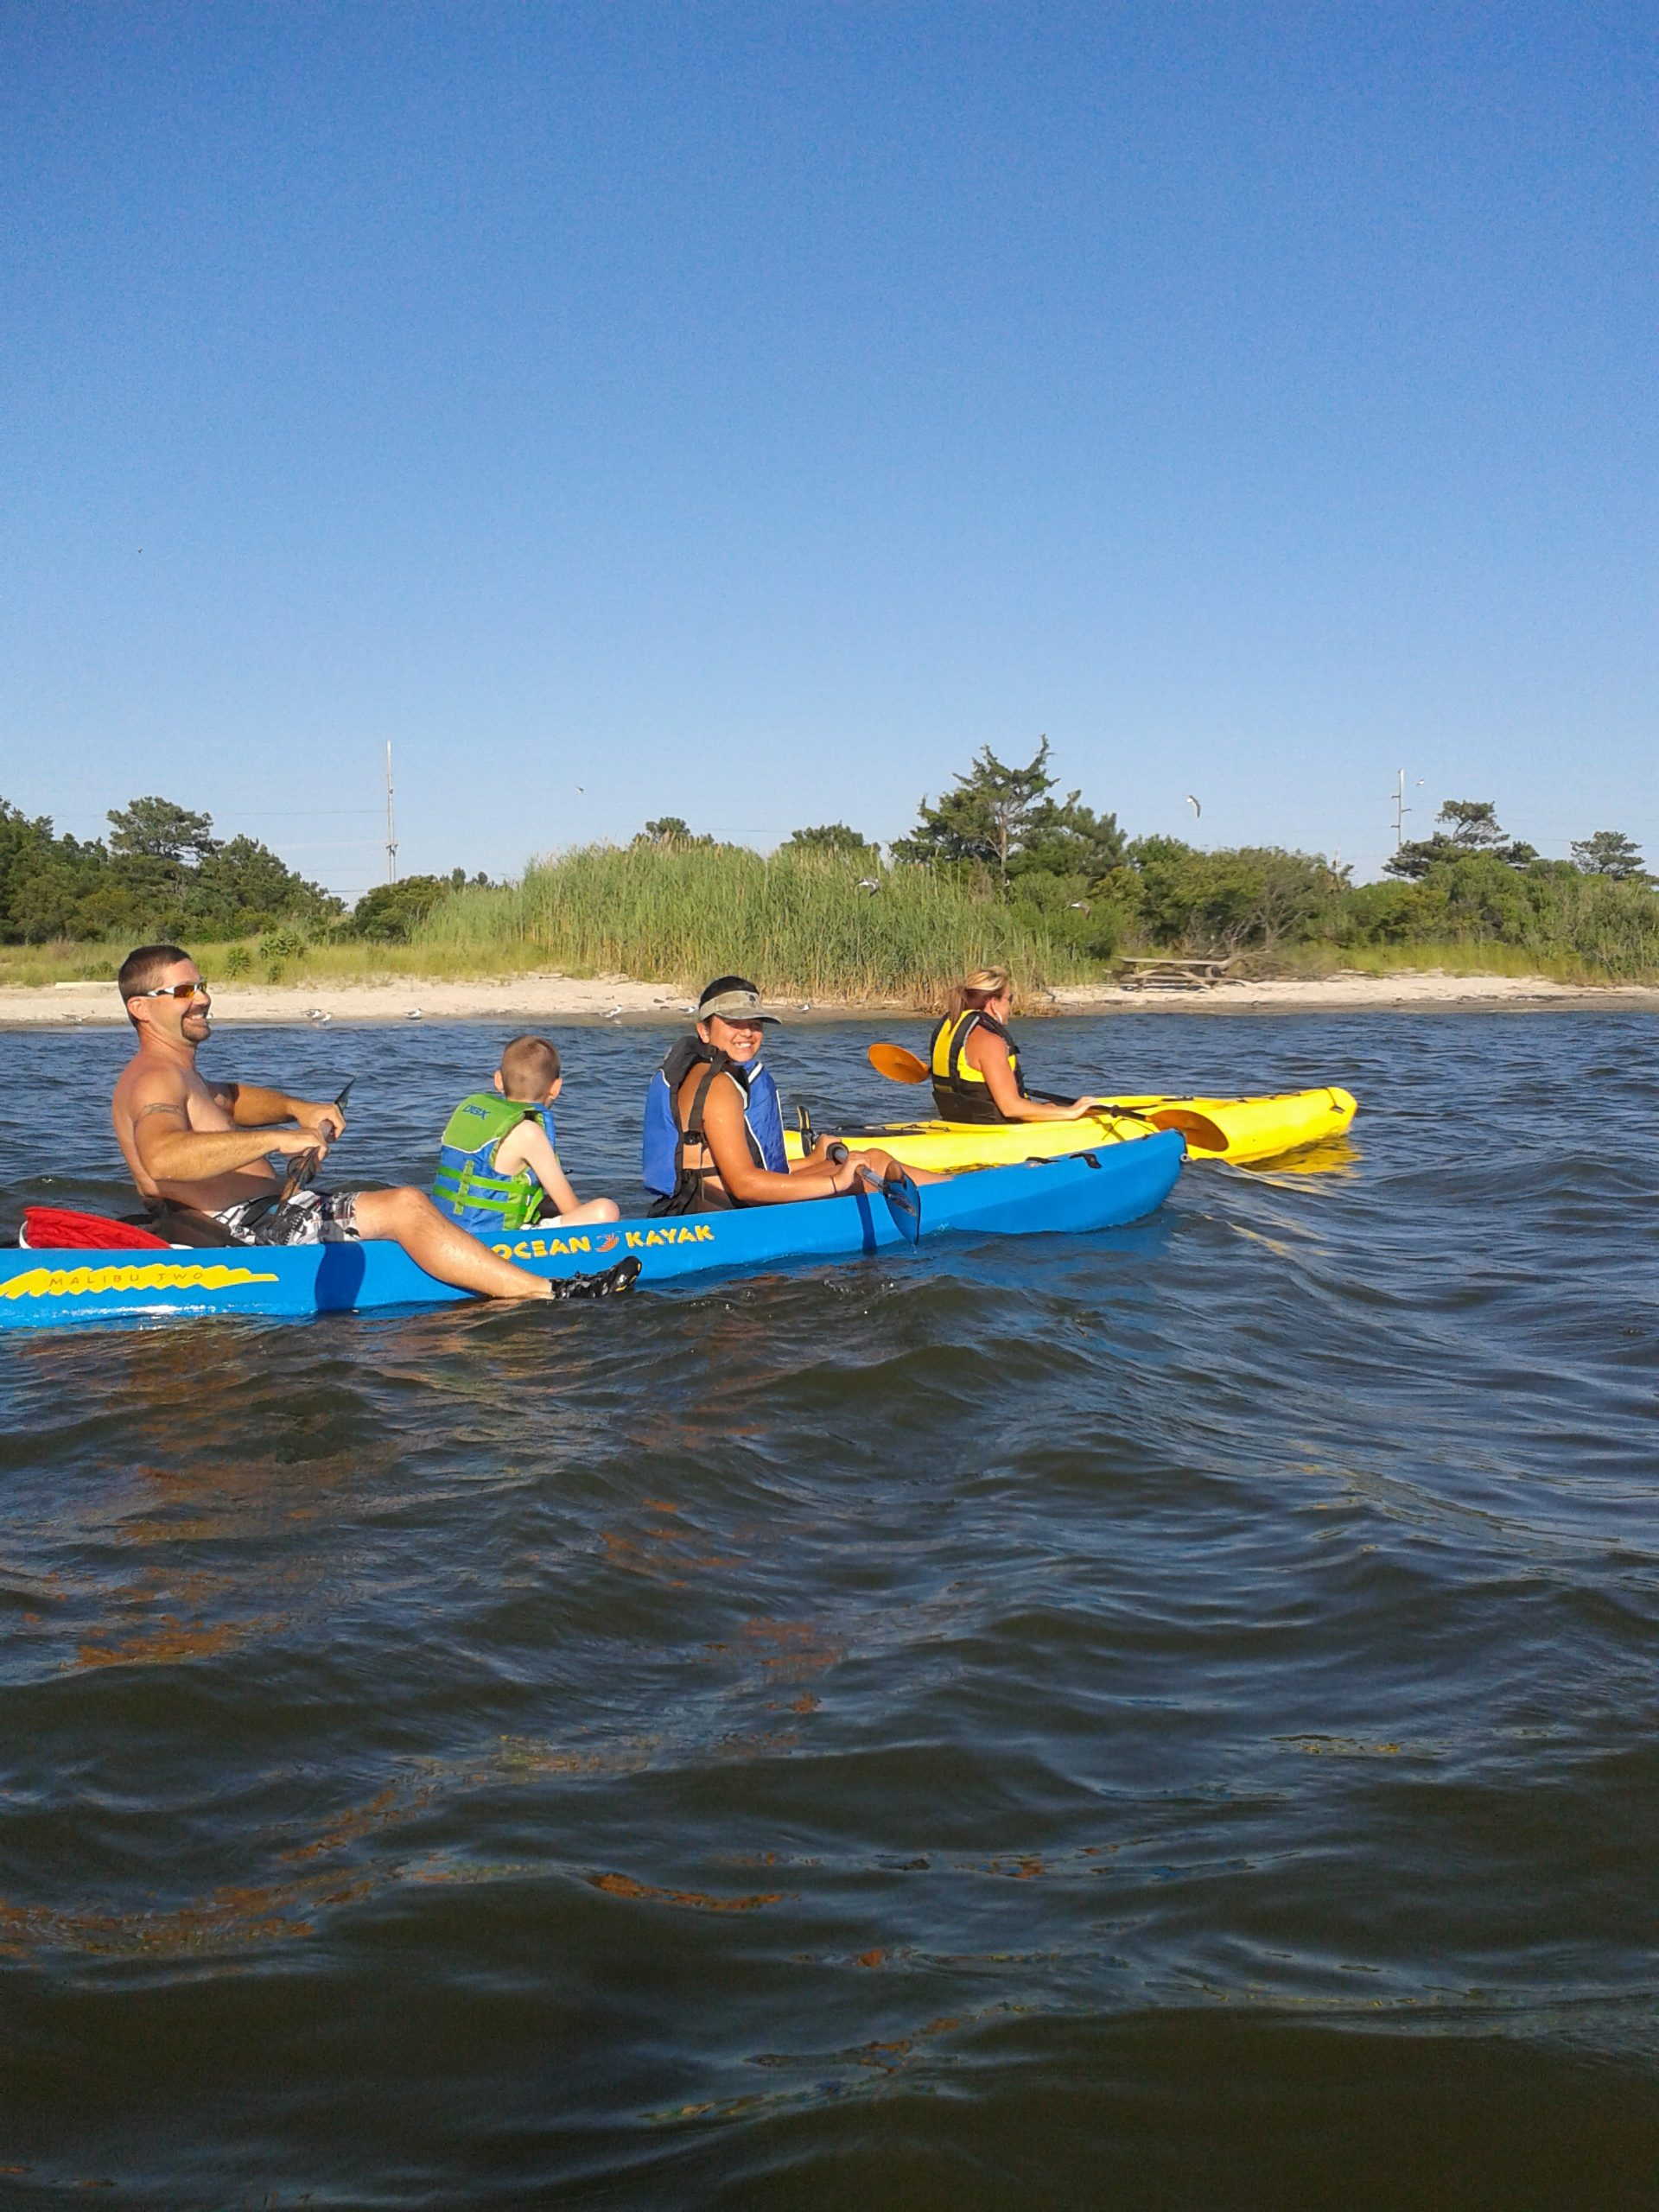 Southern Delaware Outdoor Adventures: Life is more good-natured here!